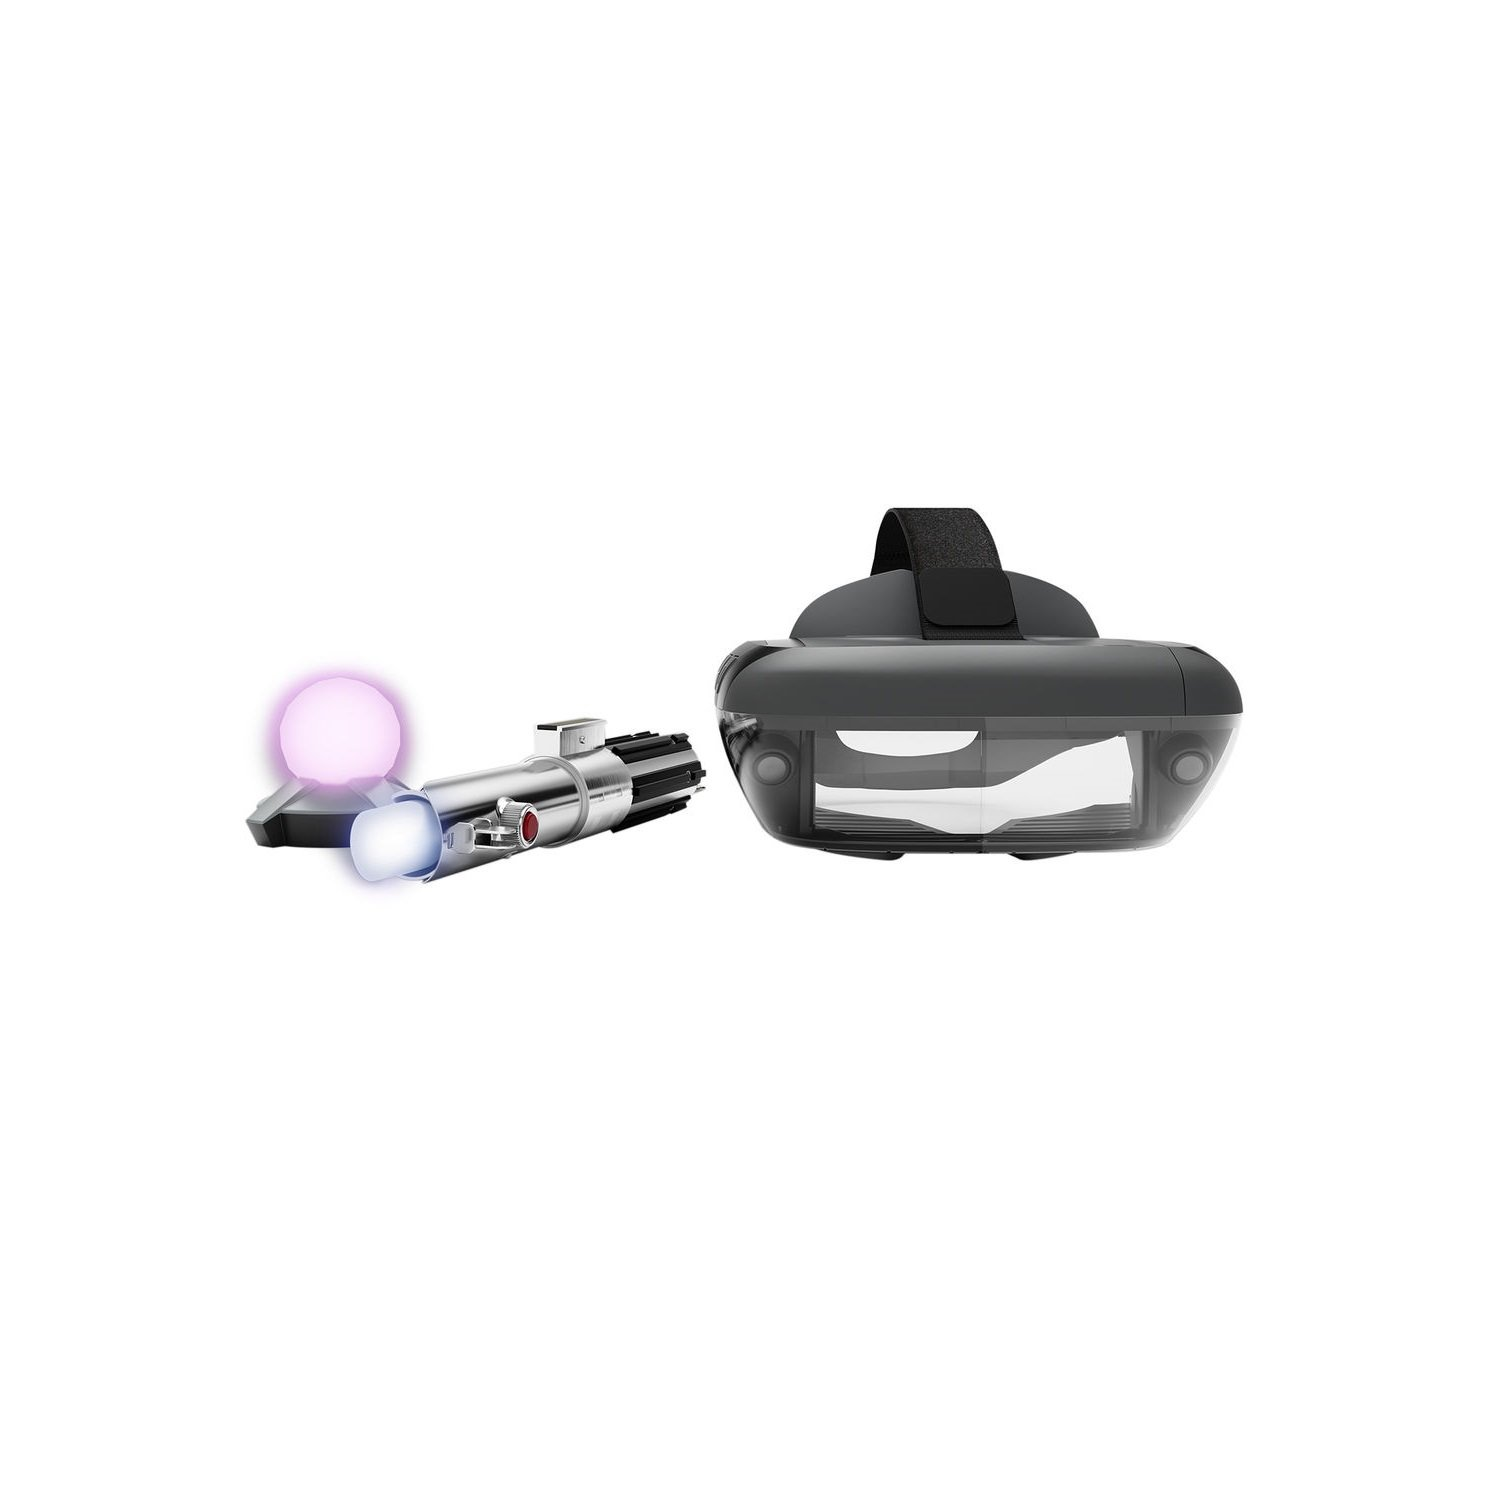 Star Wars: Jedi Challenges AR Headset with Lightsaber Controller and Tracking Beacon (Lenovo AR-7561N)